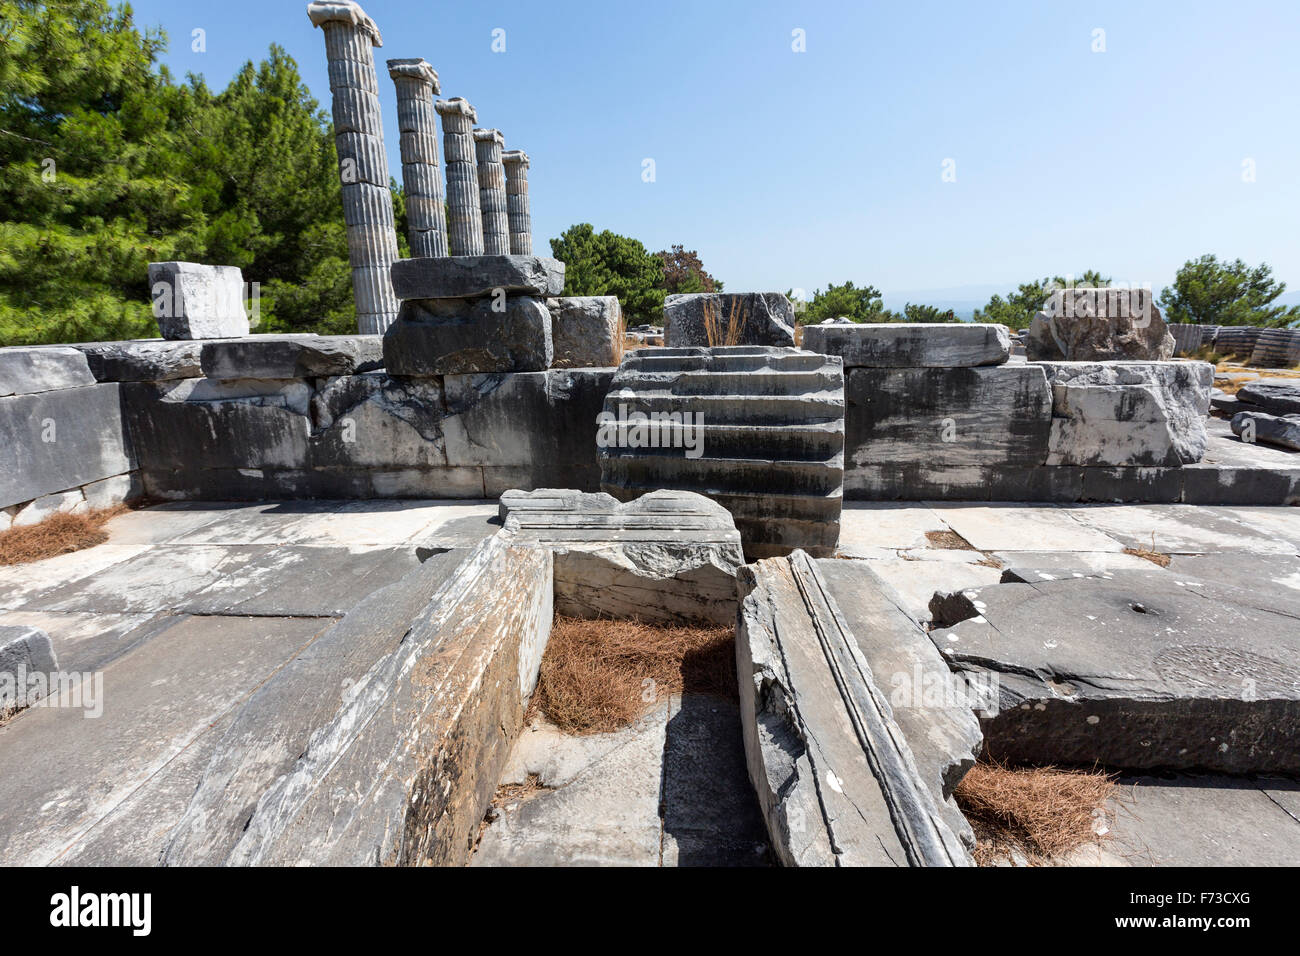 Ionic columns of the Temple of Athena. Priene an ancient Greek city of Ionia at the base of an escarpment of Mycale. - Stock Image